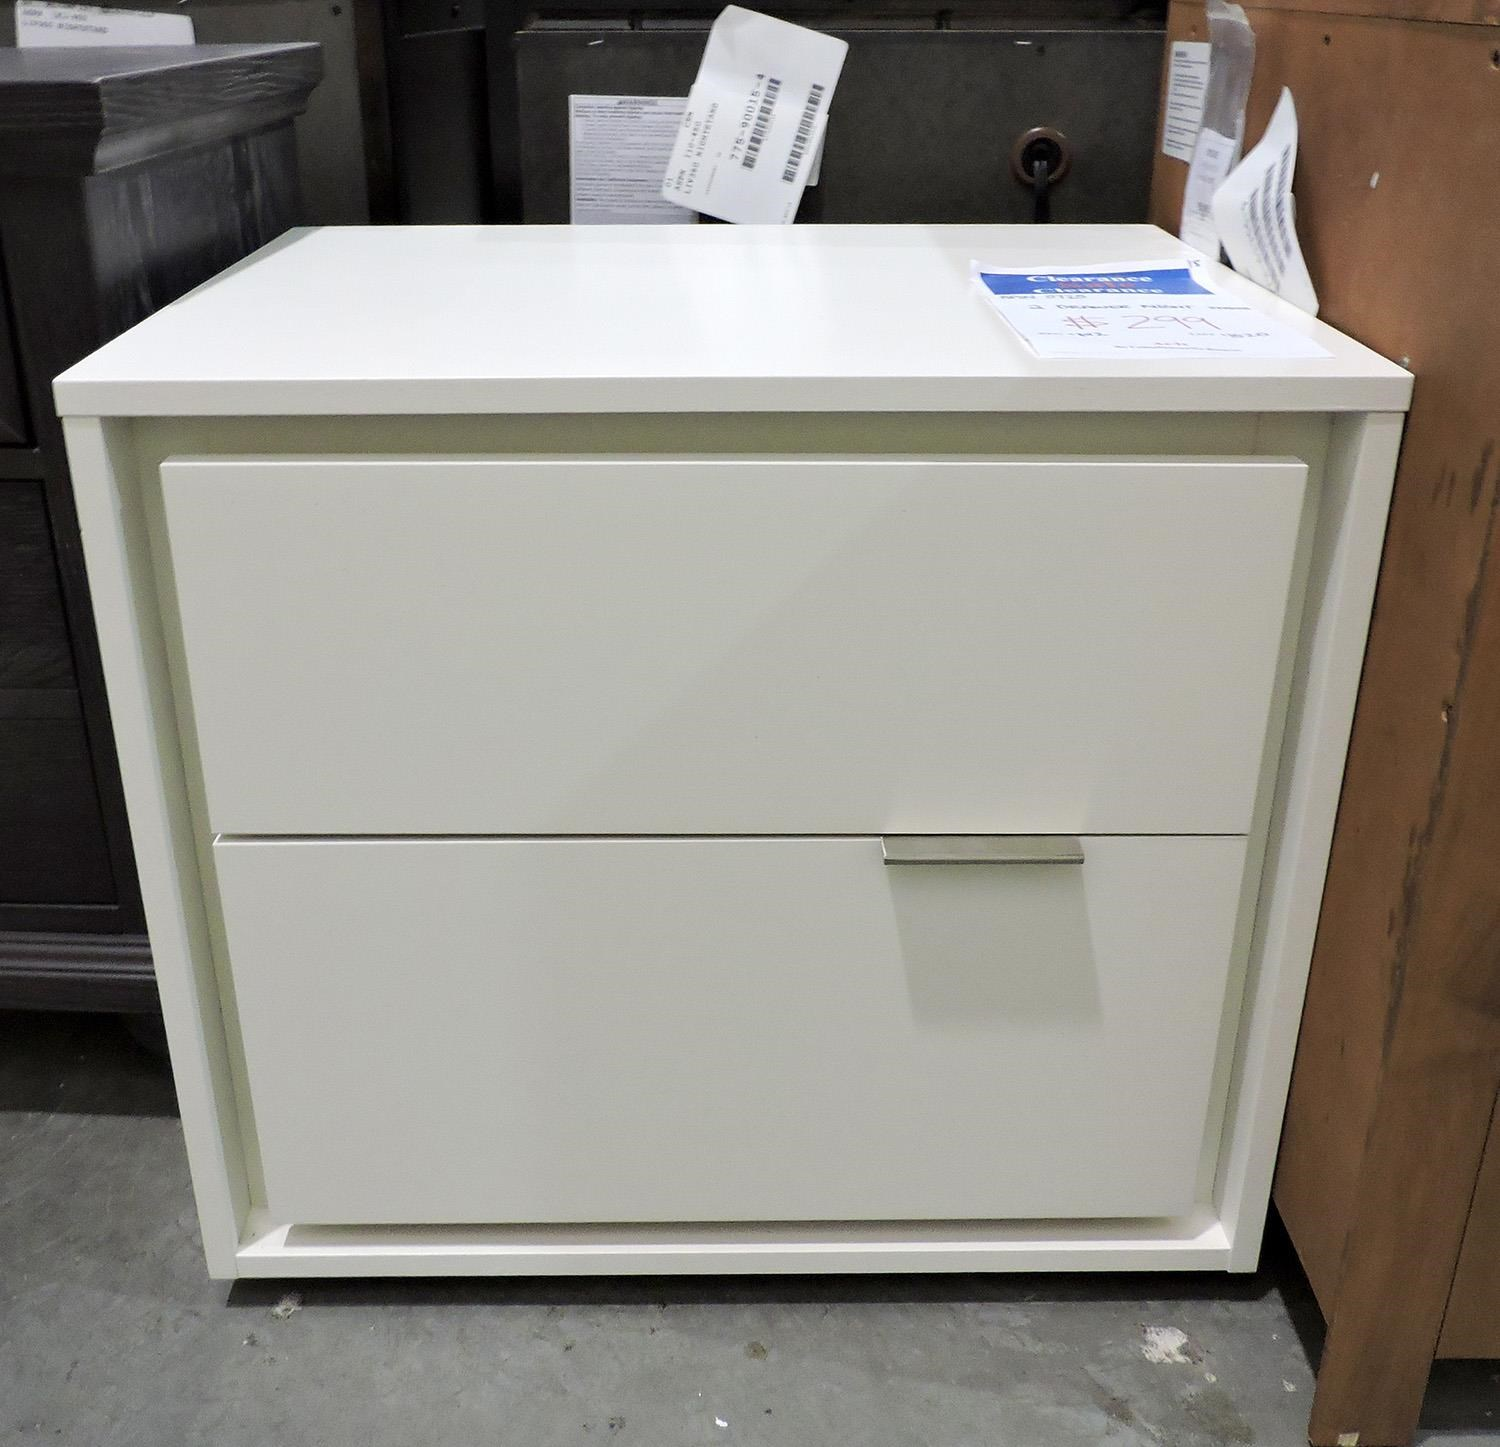 Miscellaneous Clearance 2 Drawer Night Stand - Item Number: 072500817